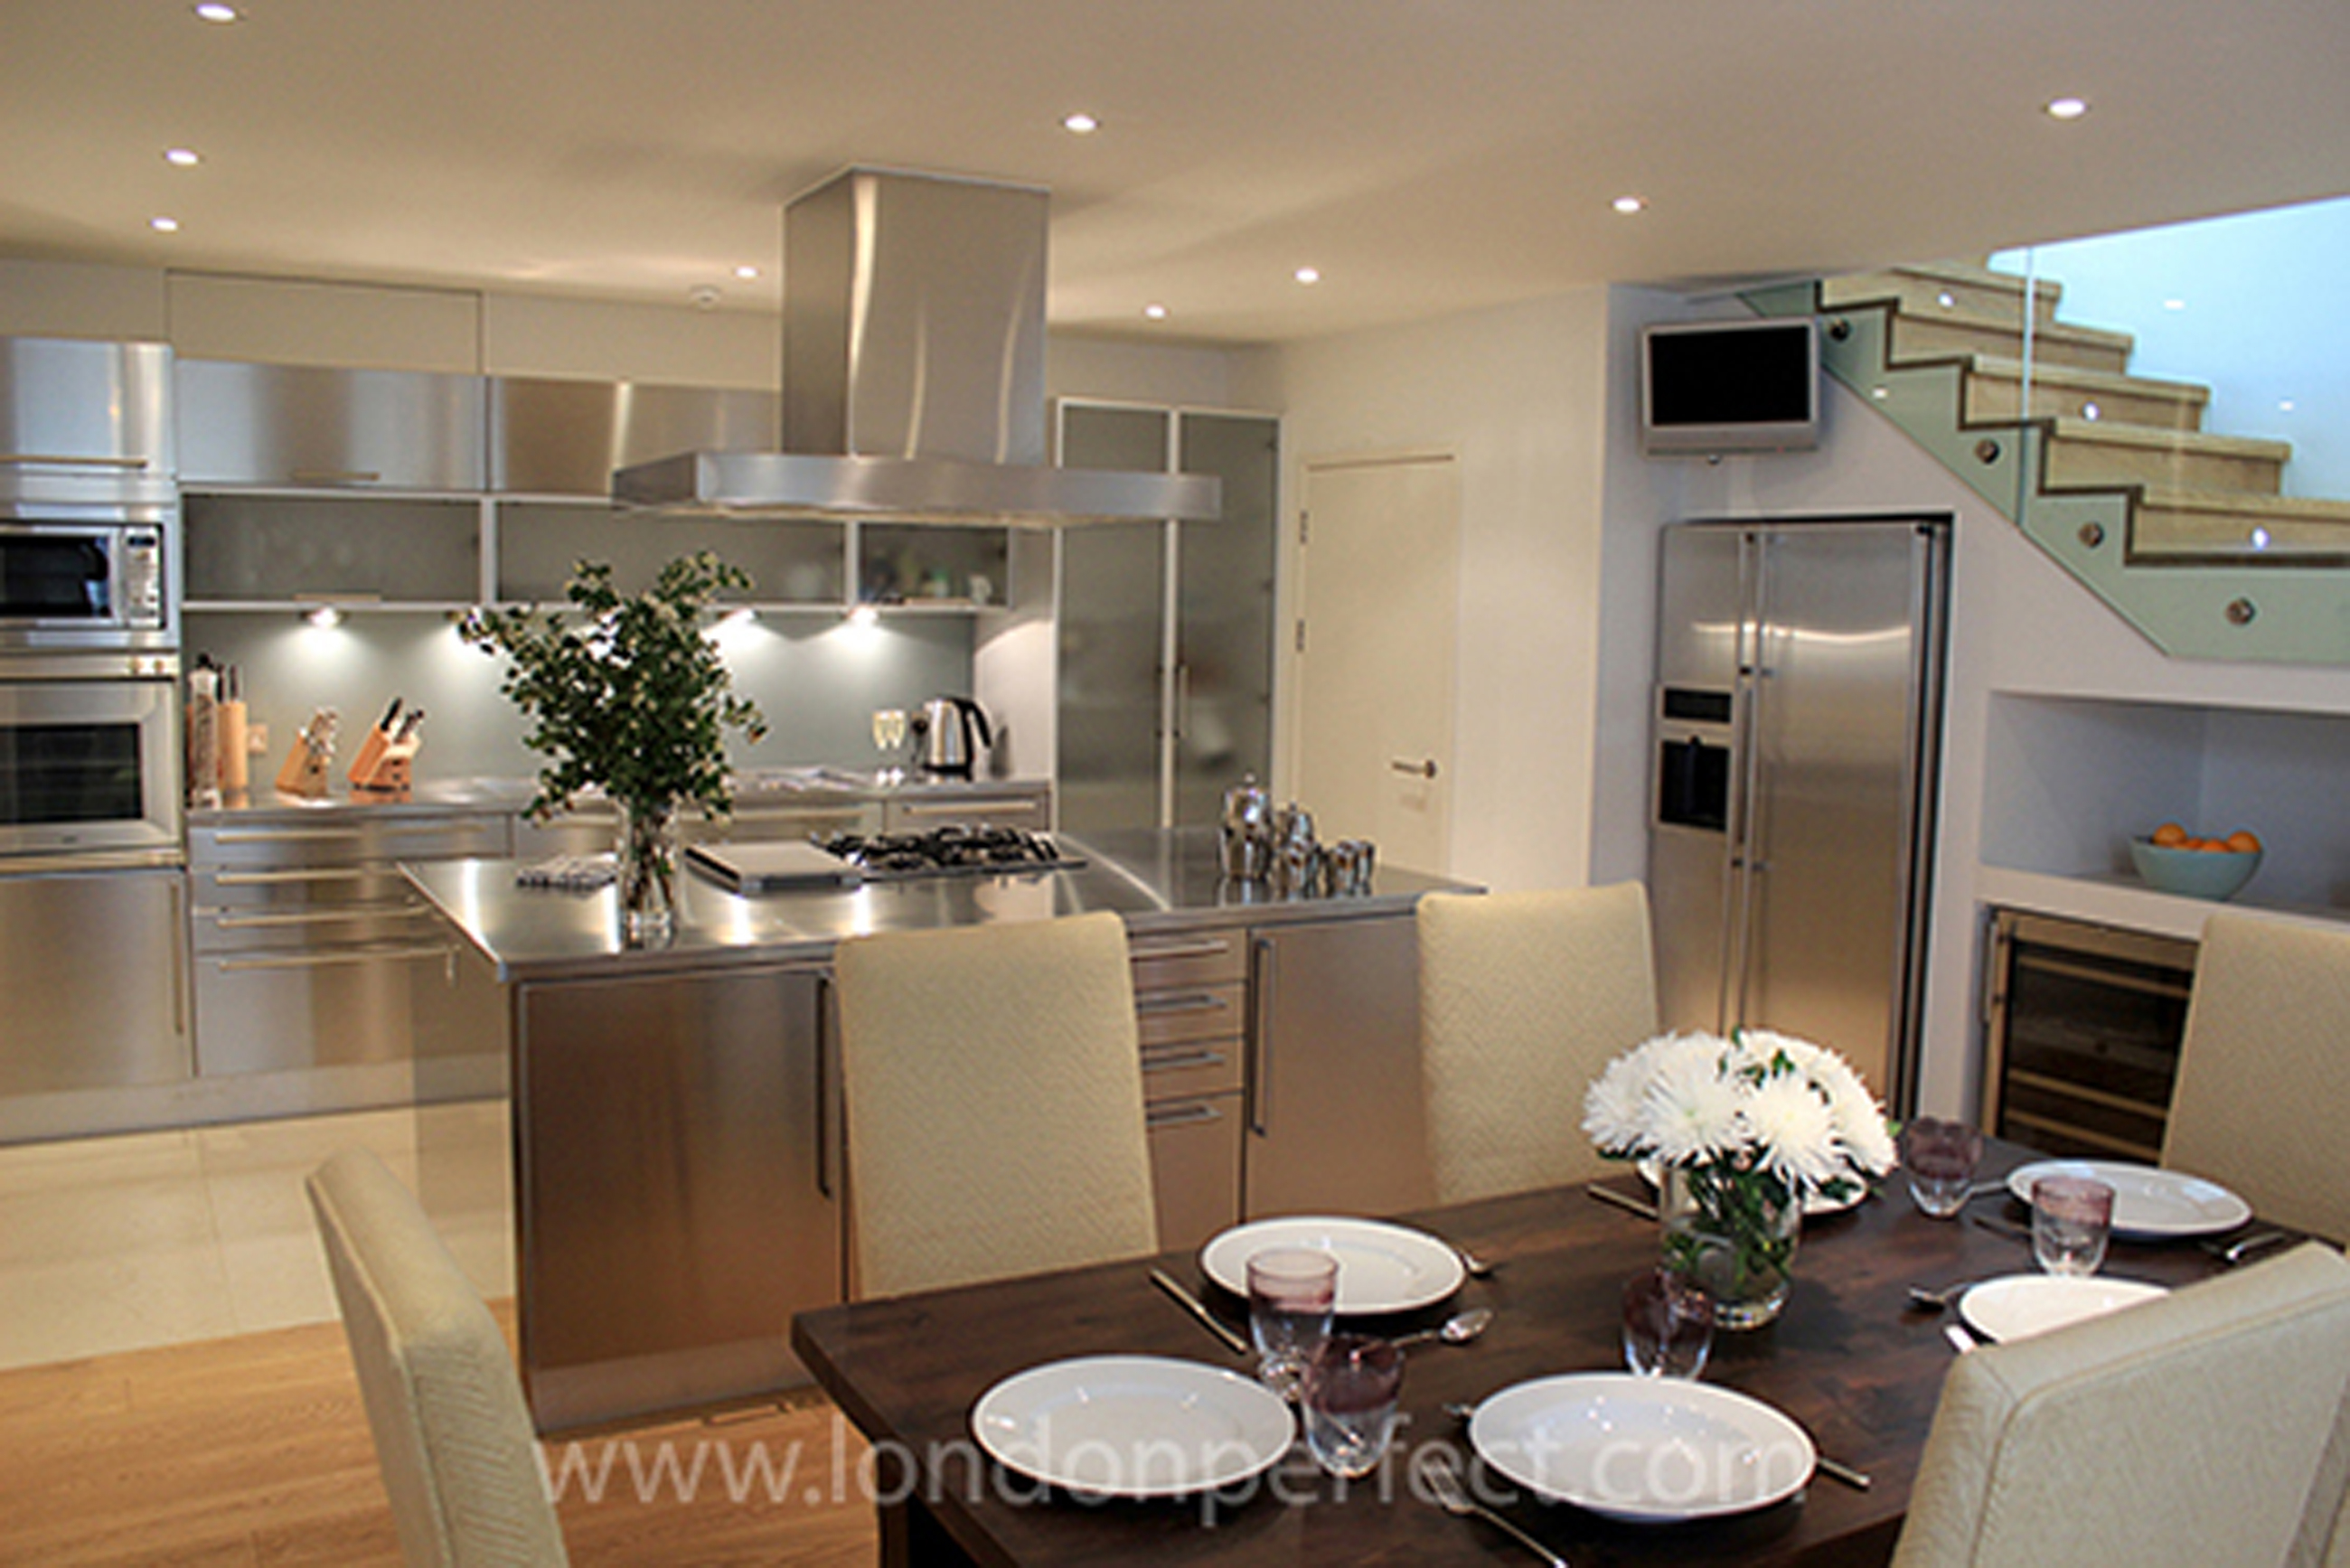 Luxury London Apartment Kitchen (Image 95 of 123)